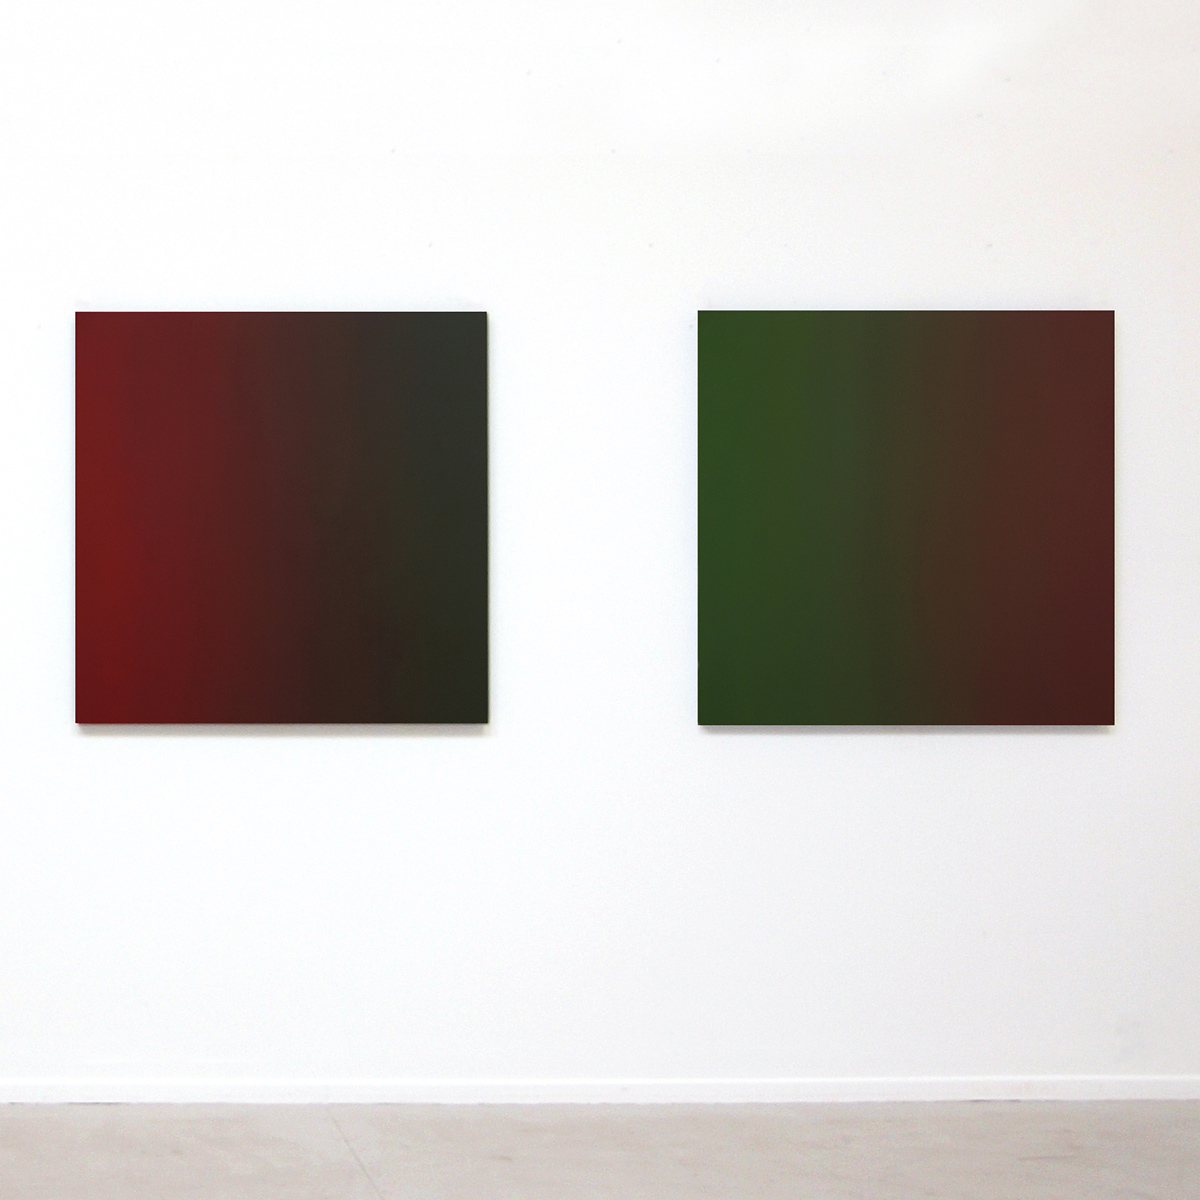 l. to r. Double Take and Bittersweet (Red Green), Limitless Series, 2009, oil on canvas, 40 x 40 in. (102 x 102 cm.) each